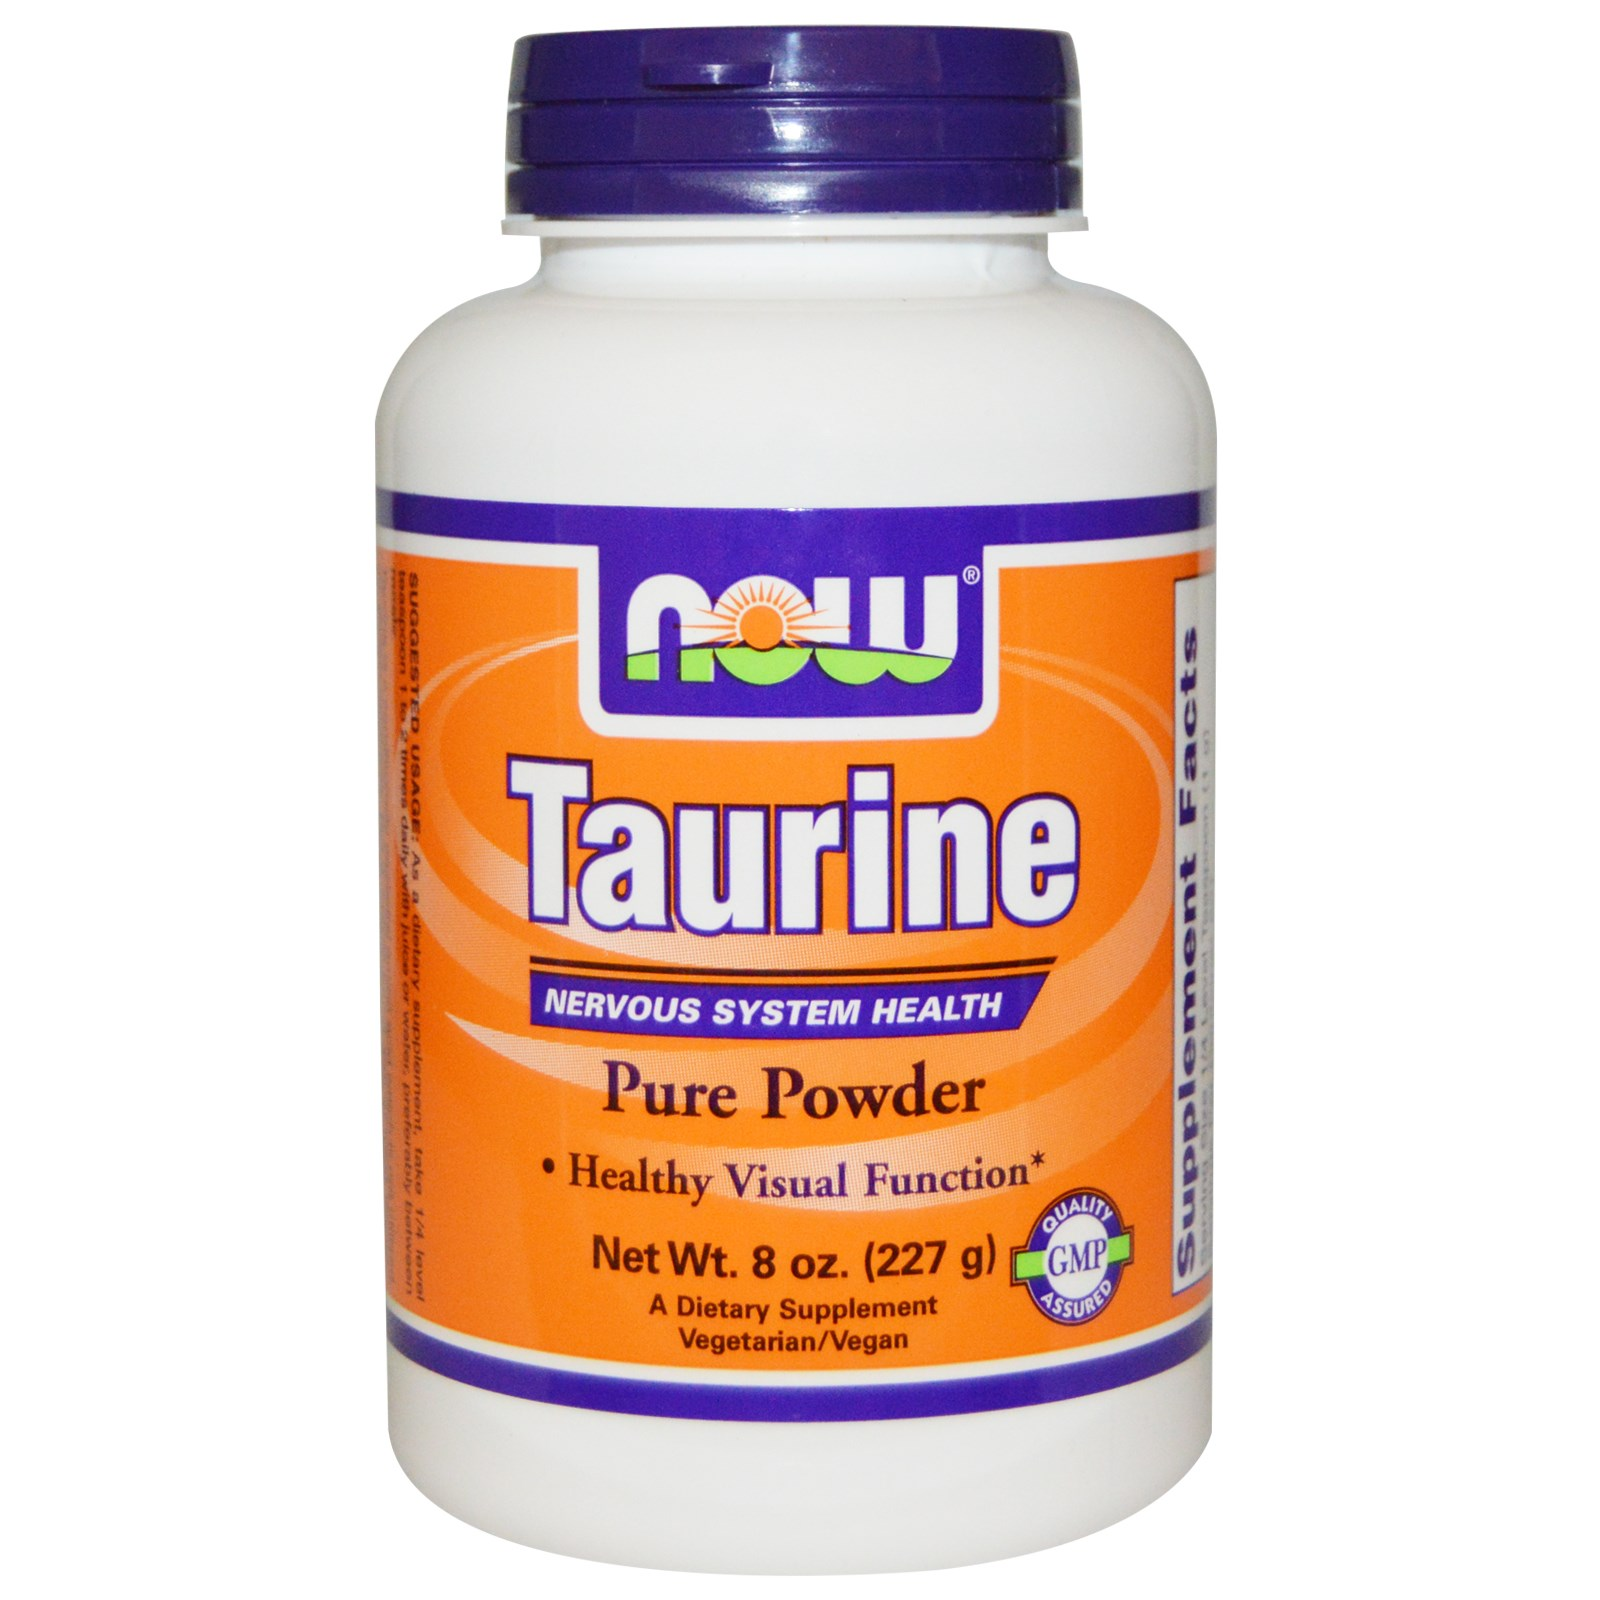 Image of Taurine Pure Powder (227 gram) - Now Foods 0733739002600